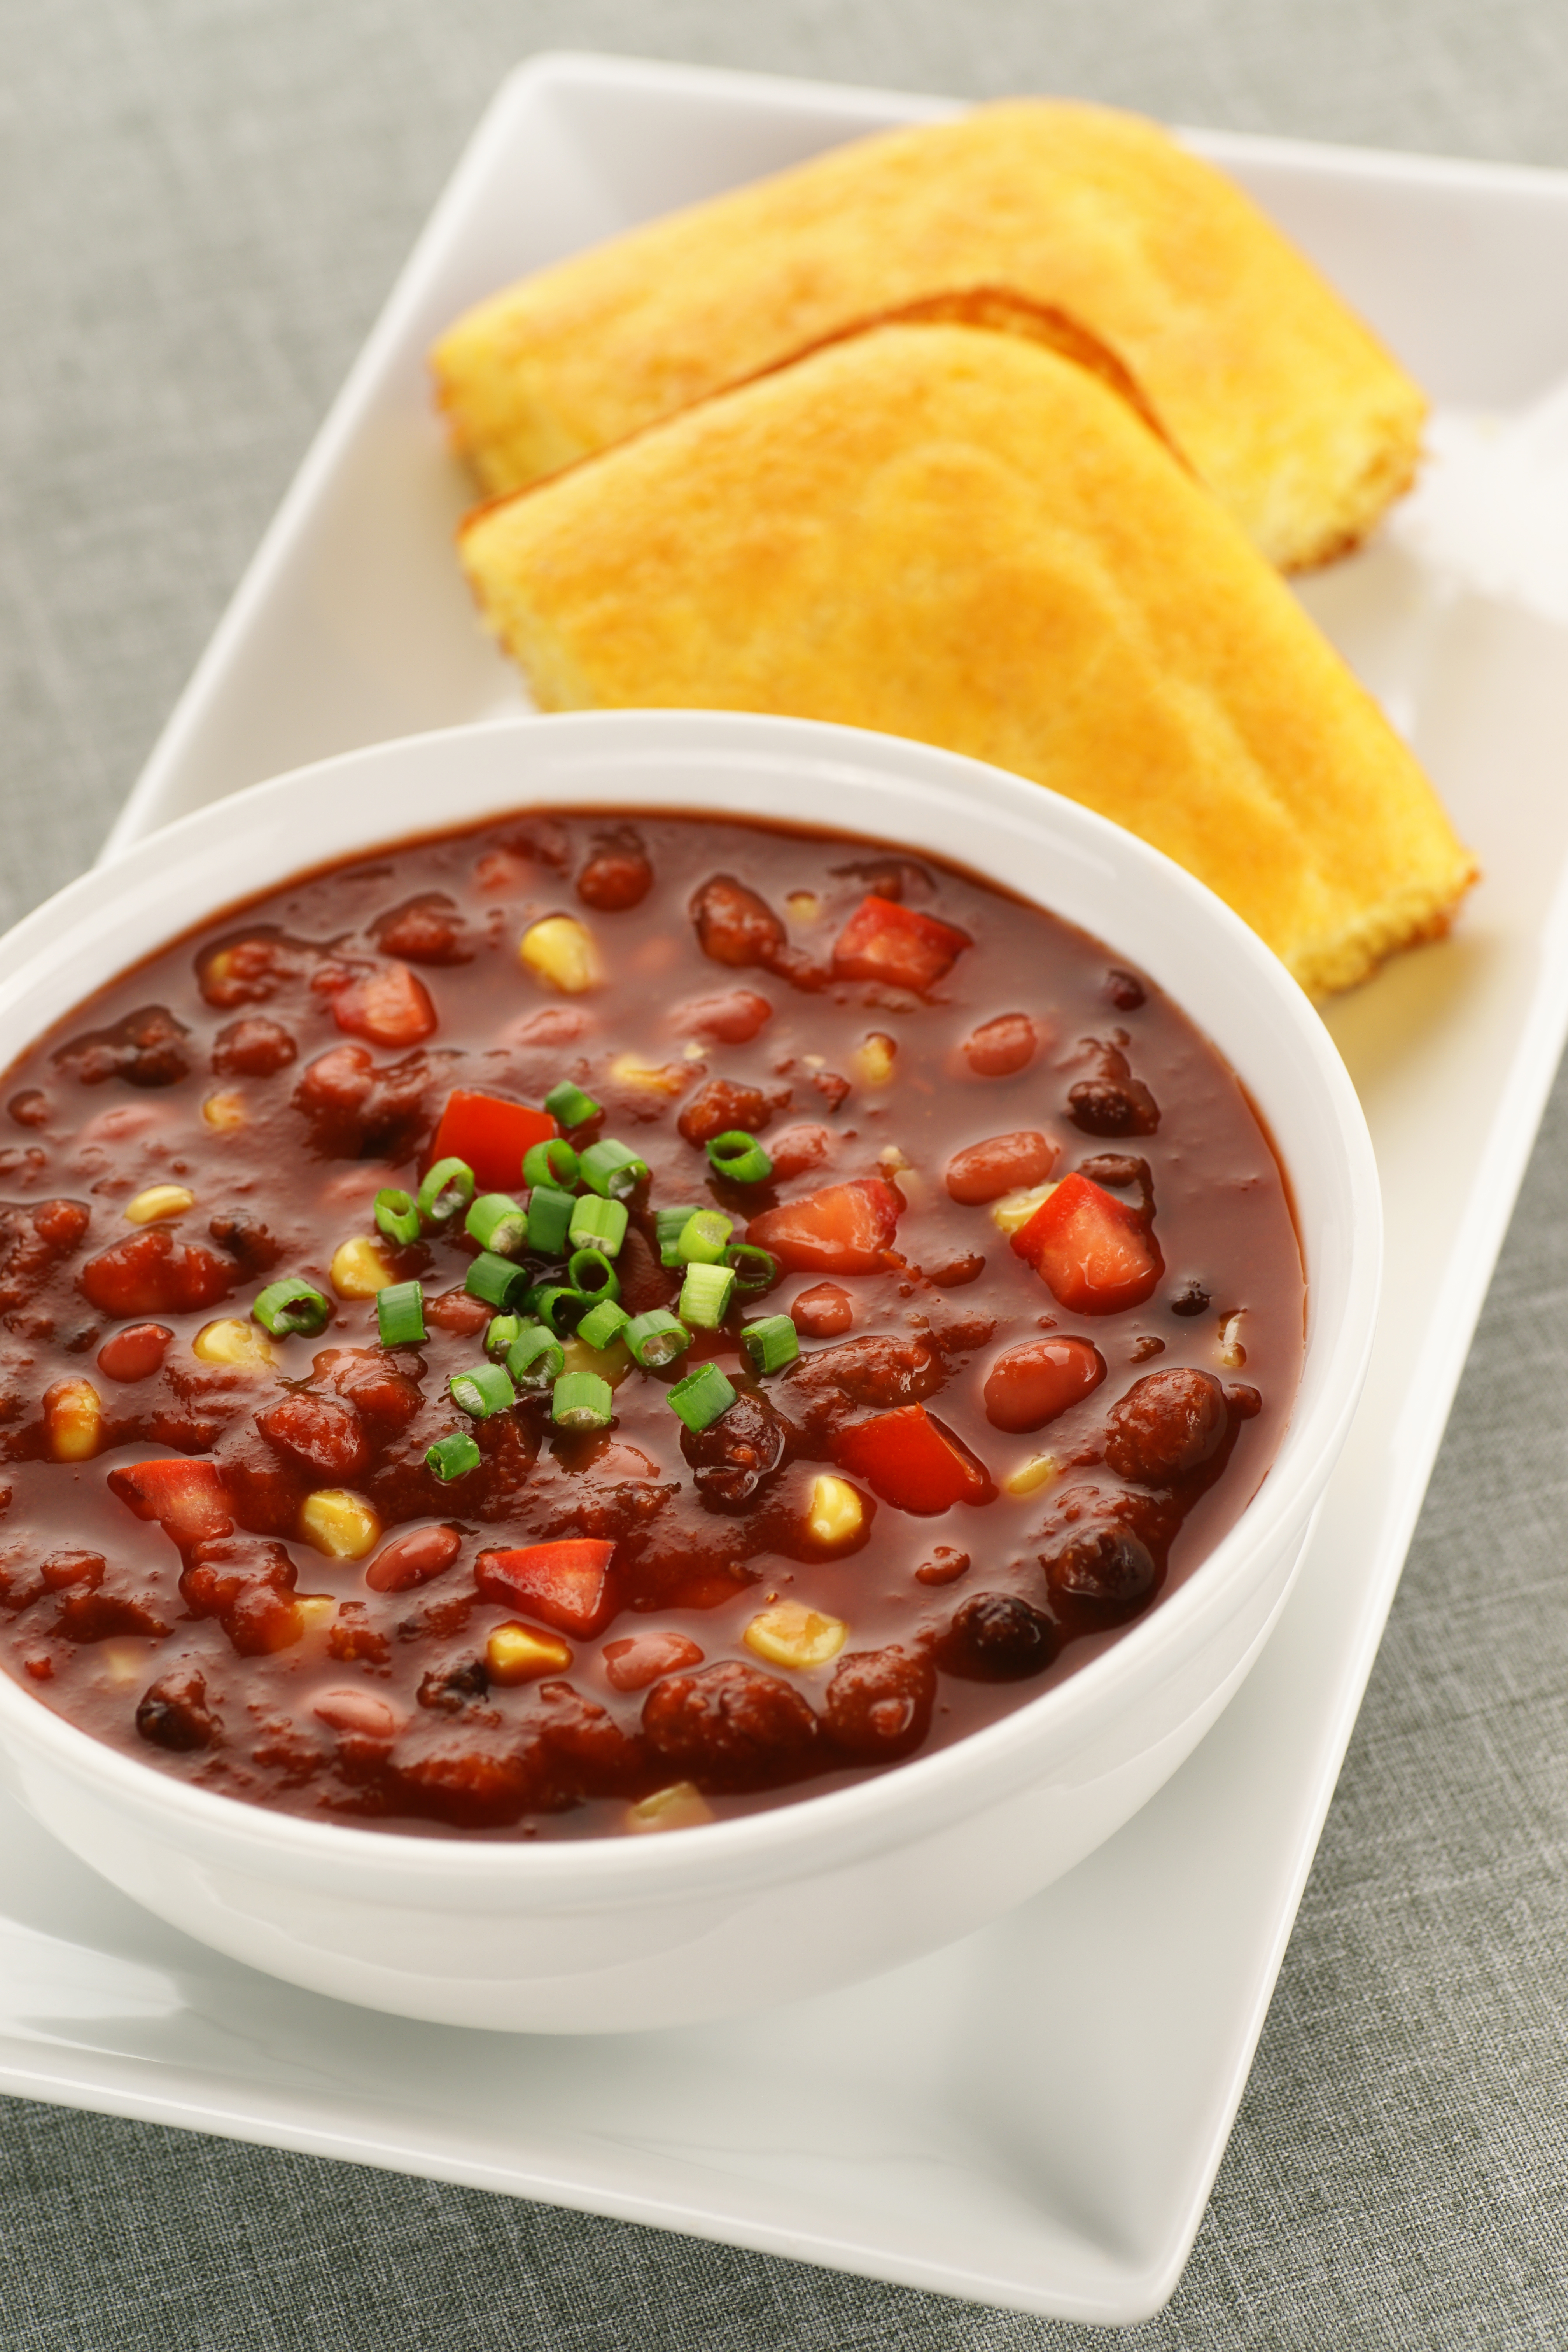 Meal Makeover: Fall Comfort Food (Vegetarian Chili and Cornbread)